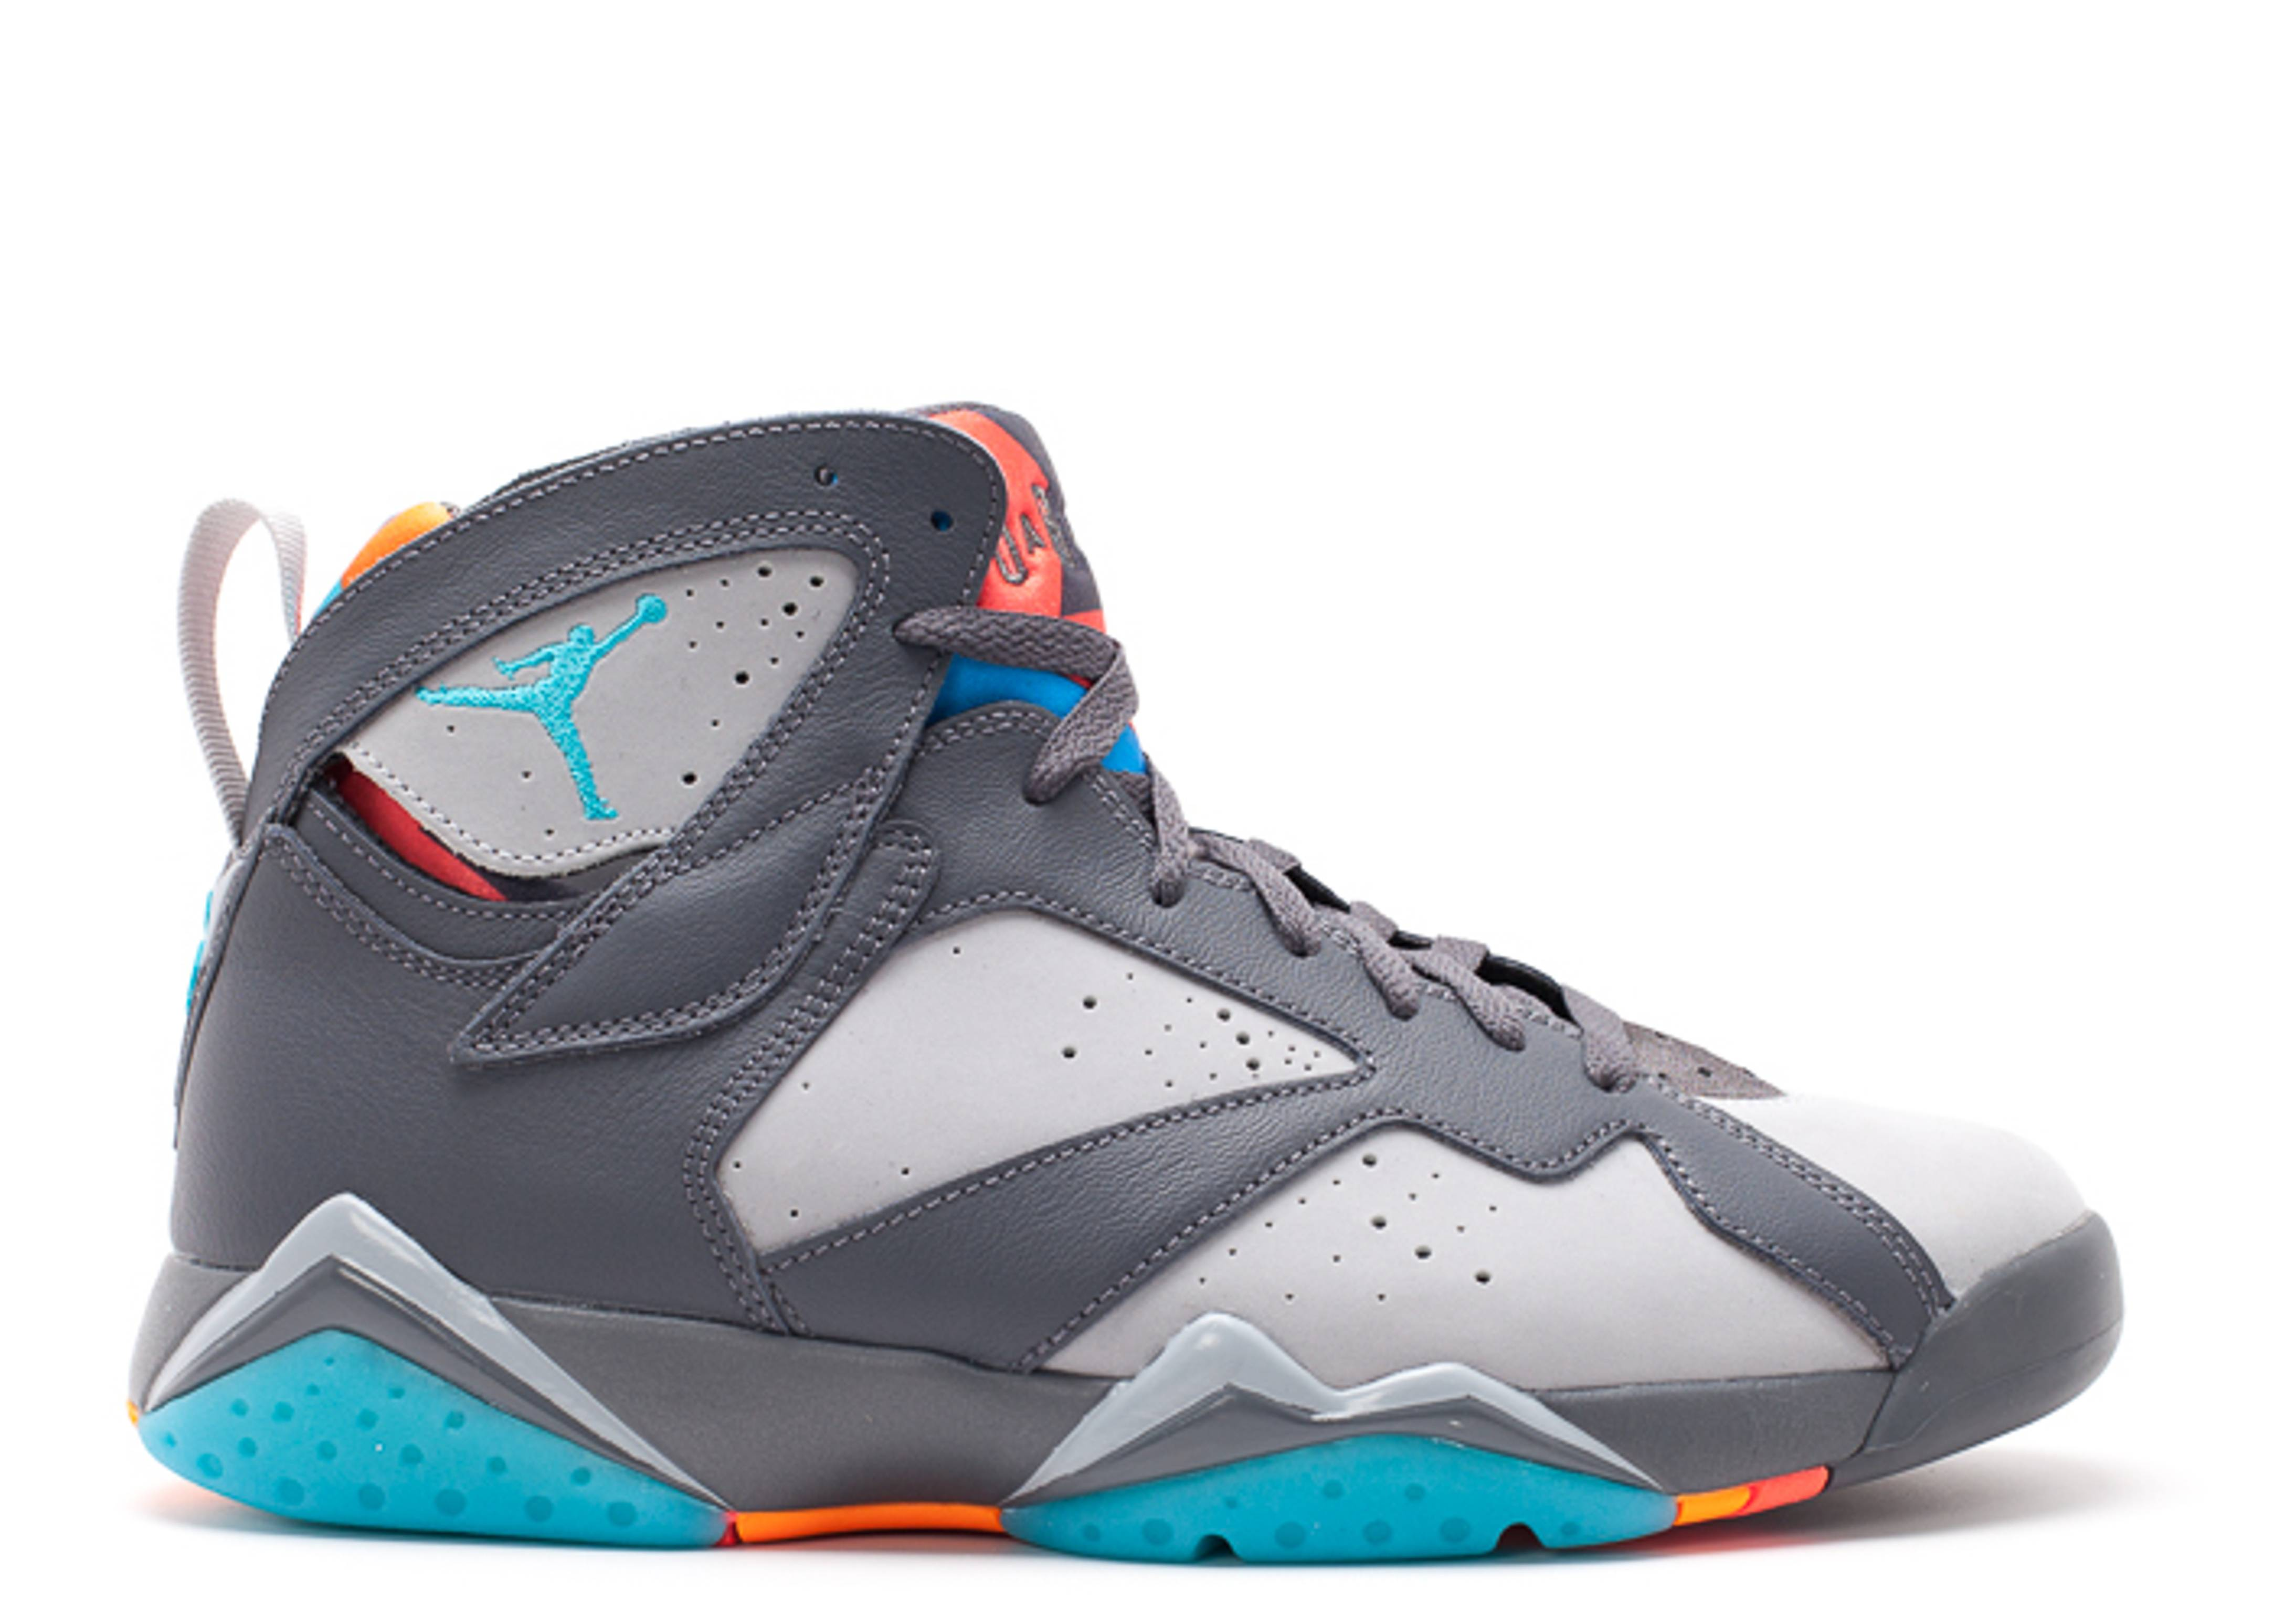 Air Jordan 7 Retro Barcelona Days Air Jordan 304775 016 Dark Grey Wolf Grey Total Orange Turquoise Blue Flight Club